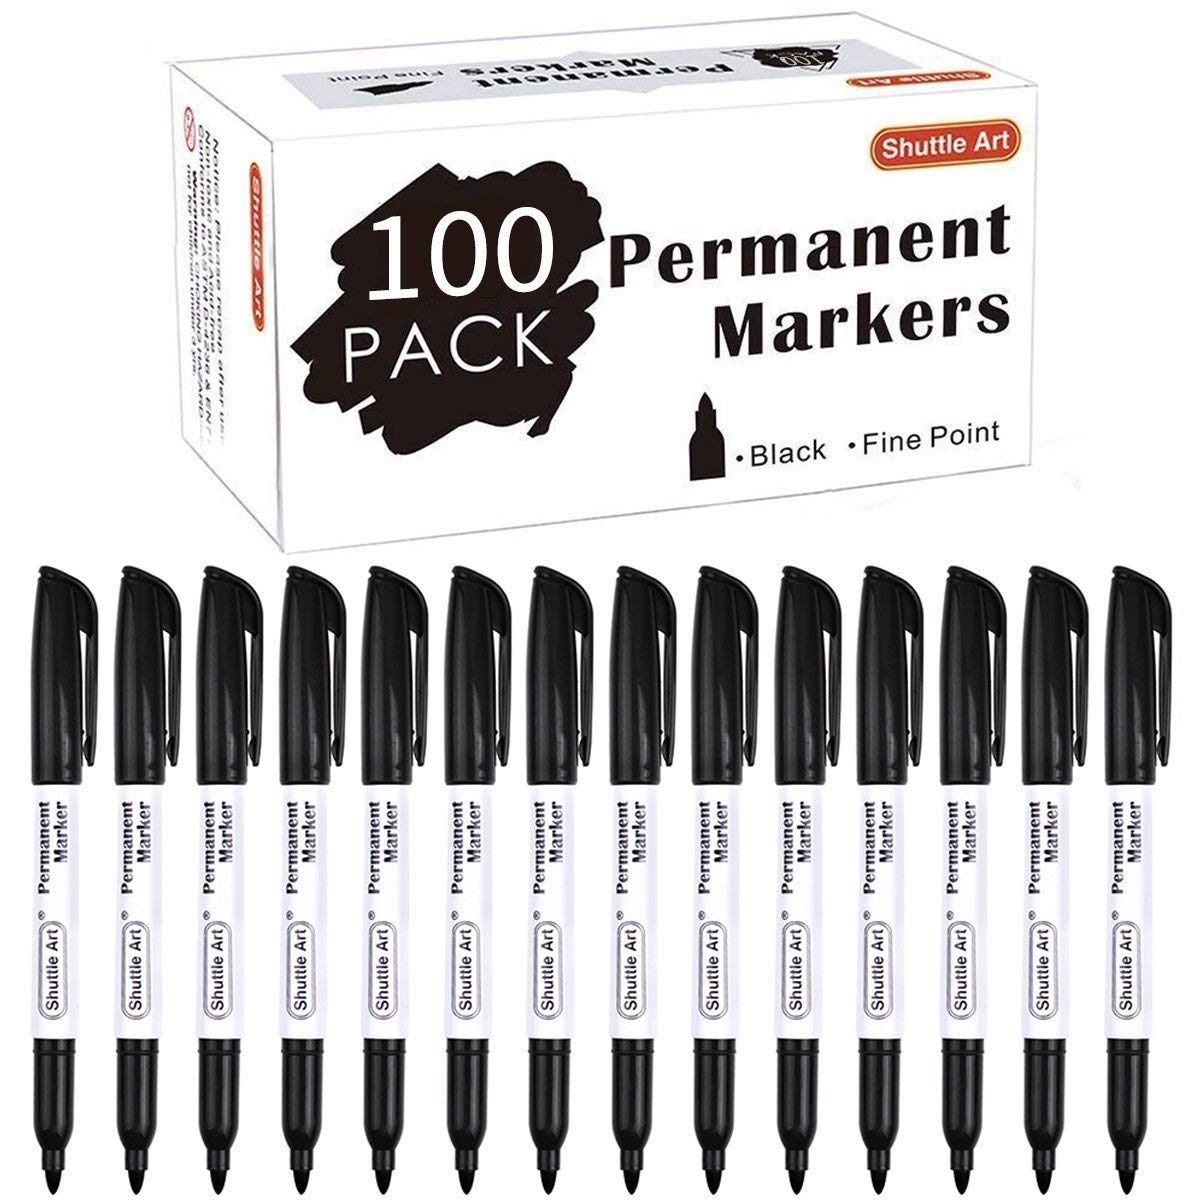 Permanent Markers,Shuttle Art 100 Pack Black Permanent Marker set,Fine Point, Works on Plastic,Wood,Stone,Metal and Glass for Doodling, Marking